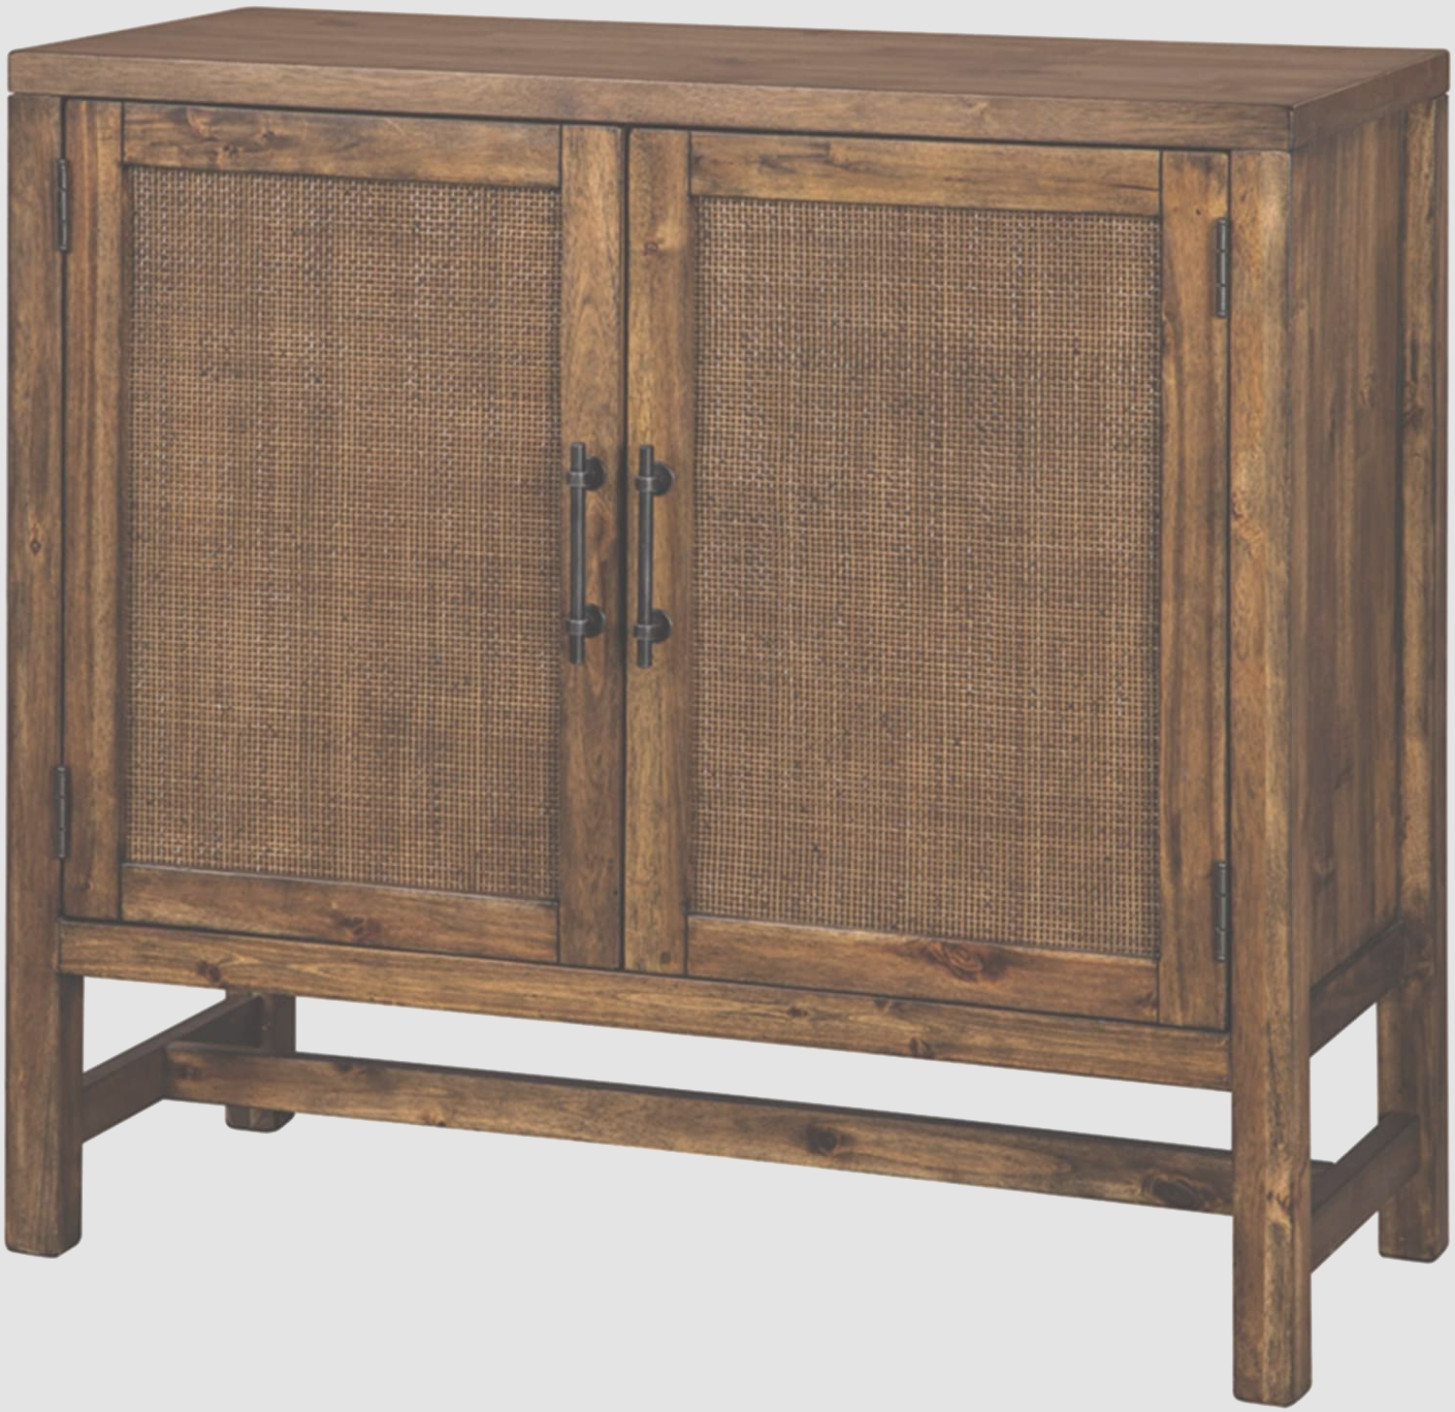 1 Inch Wide Accent Cabinet